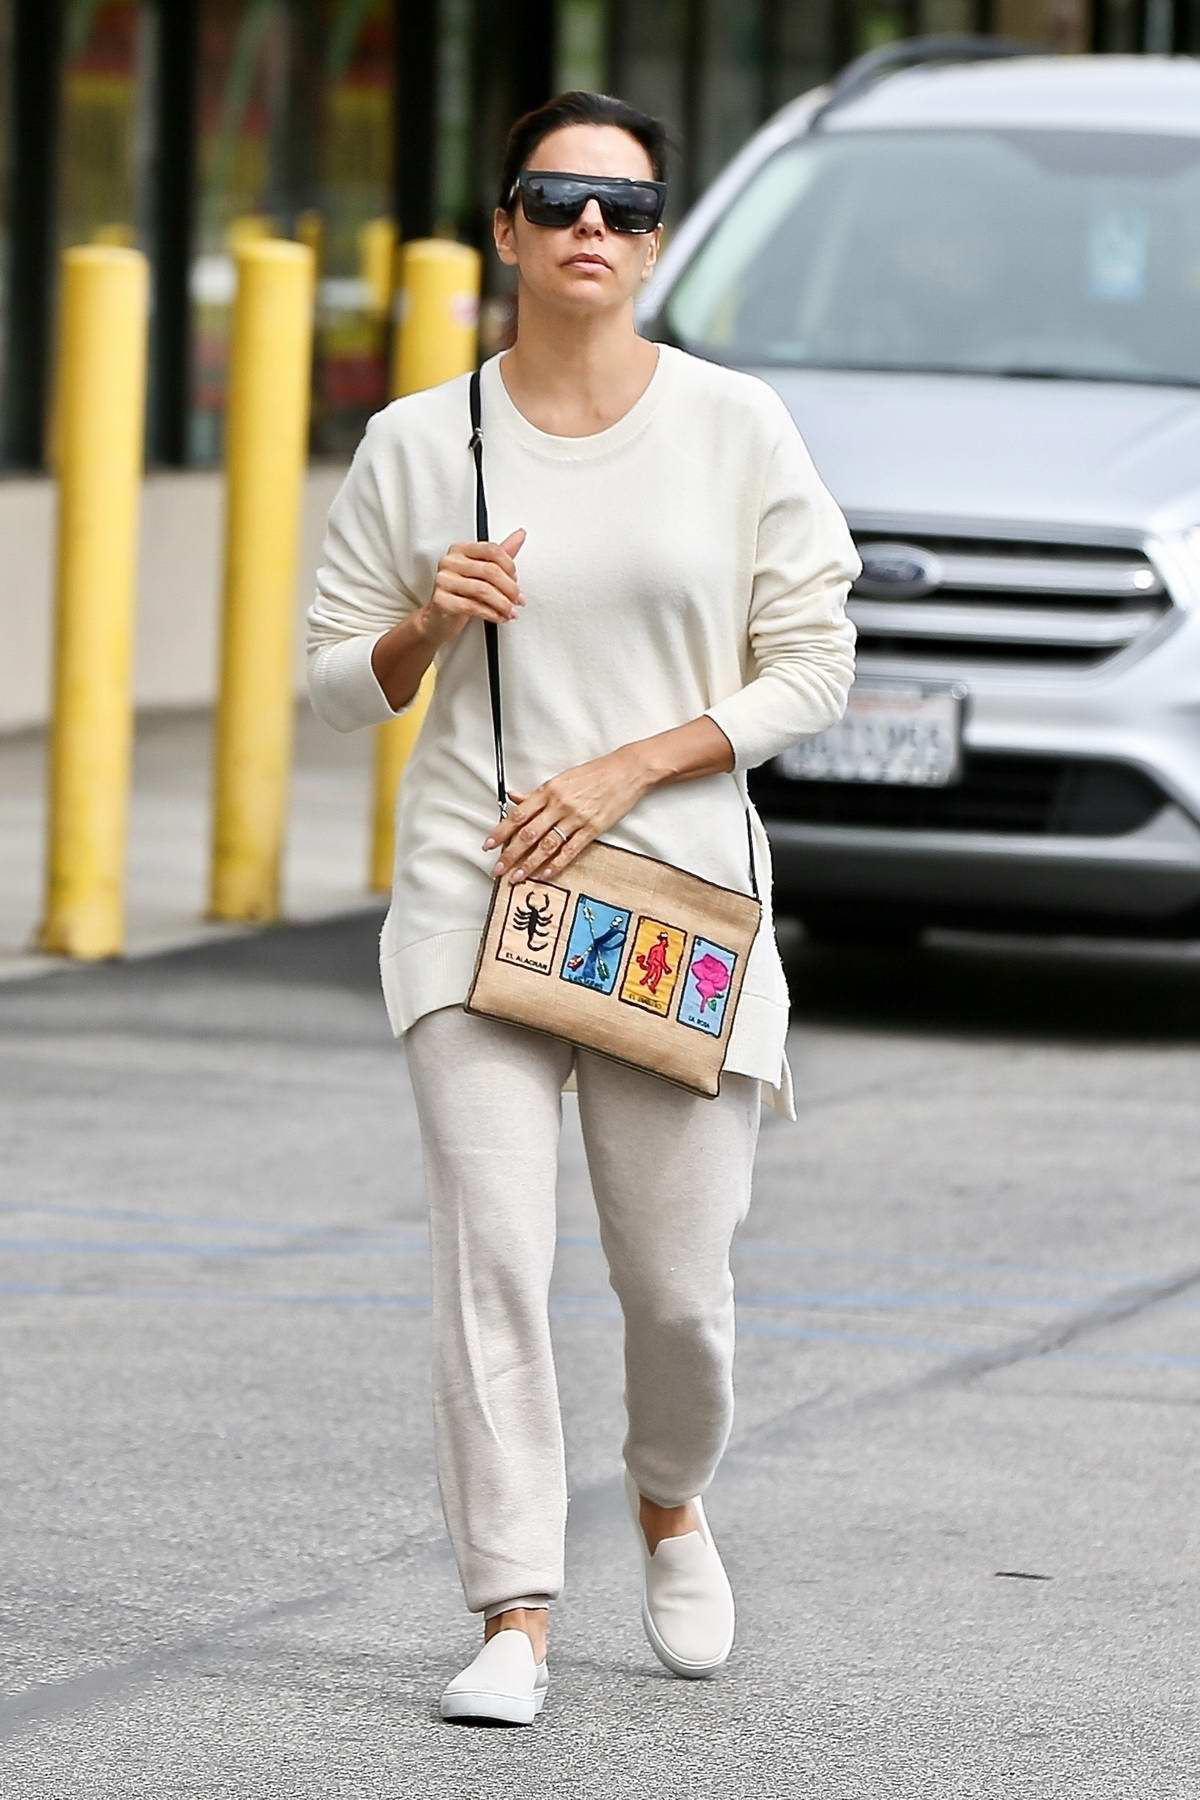 Eva Longoria gets in some craft shopping at Joann Fabrics and Crafts in Sherman Oaks, California